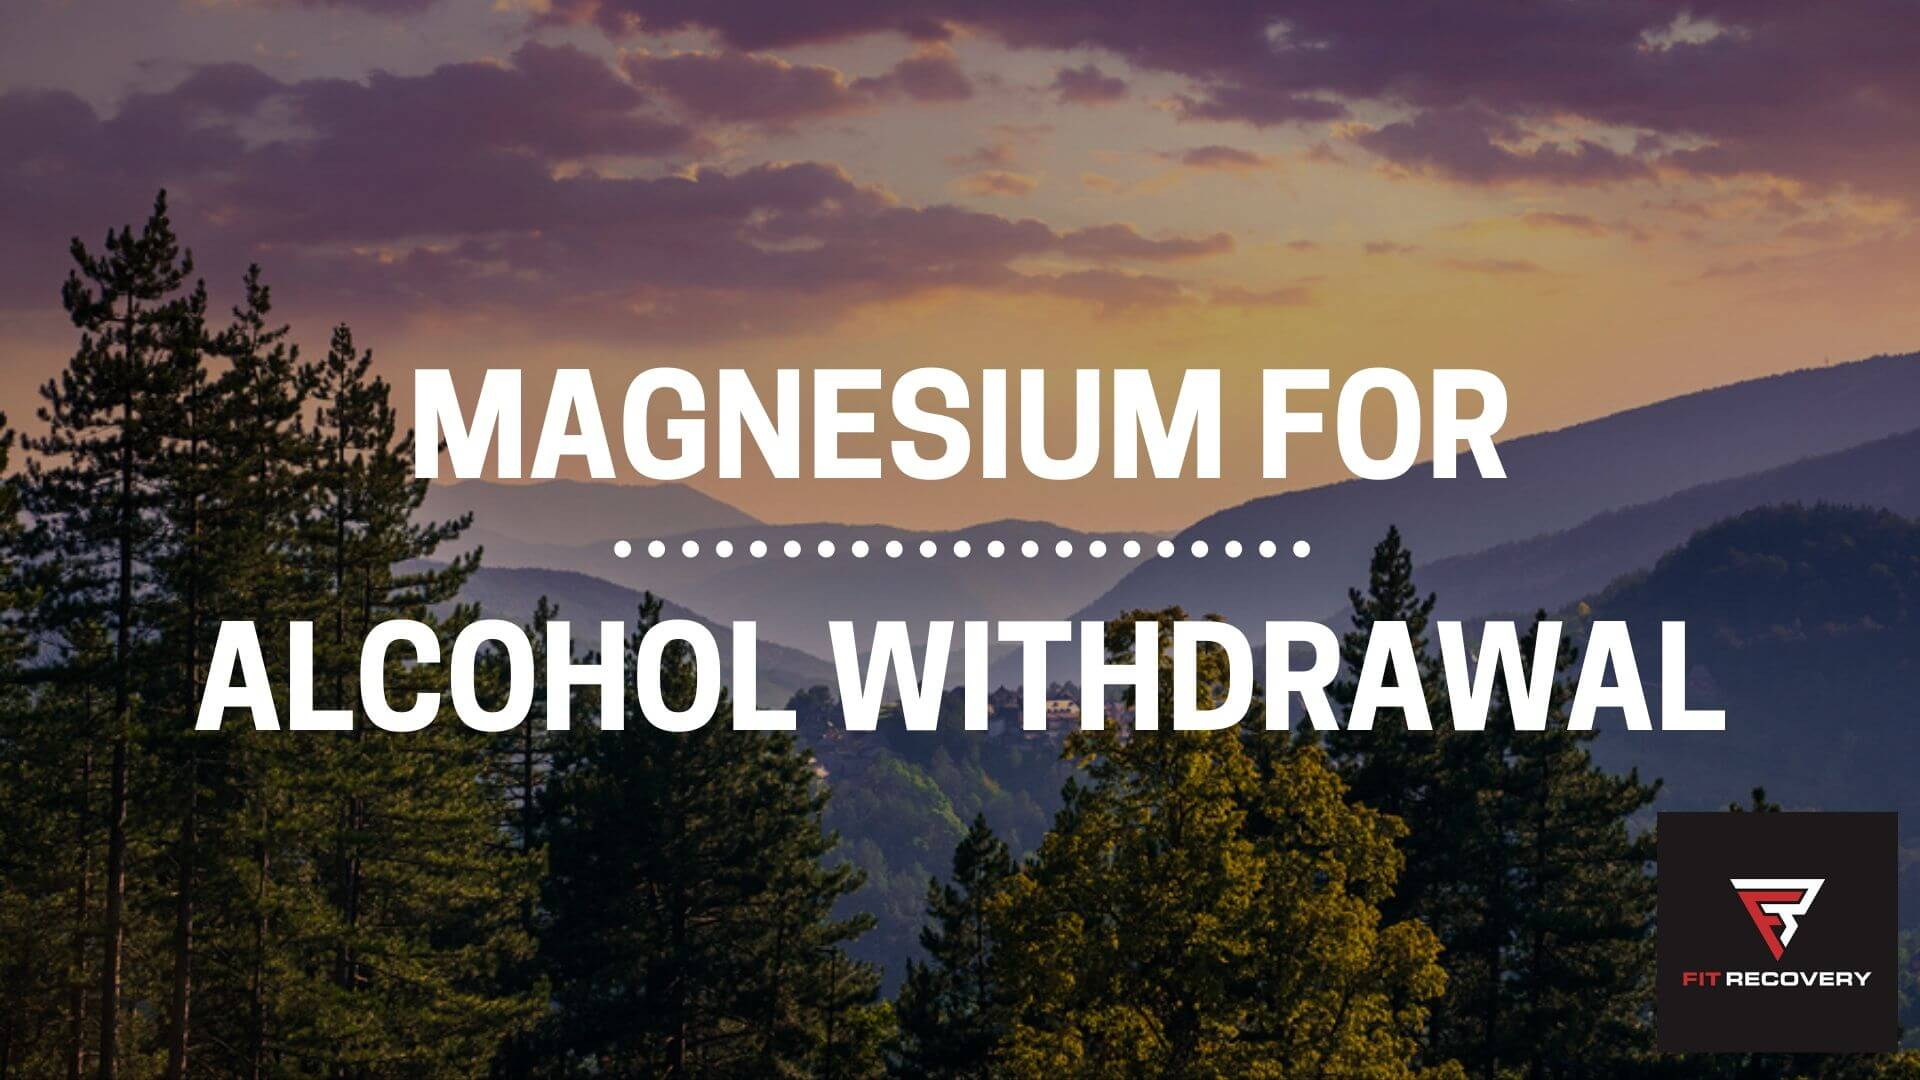 magnesium for alcohol withdrawal